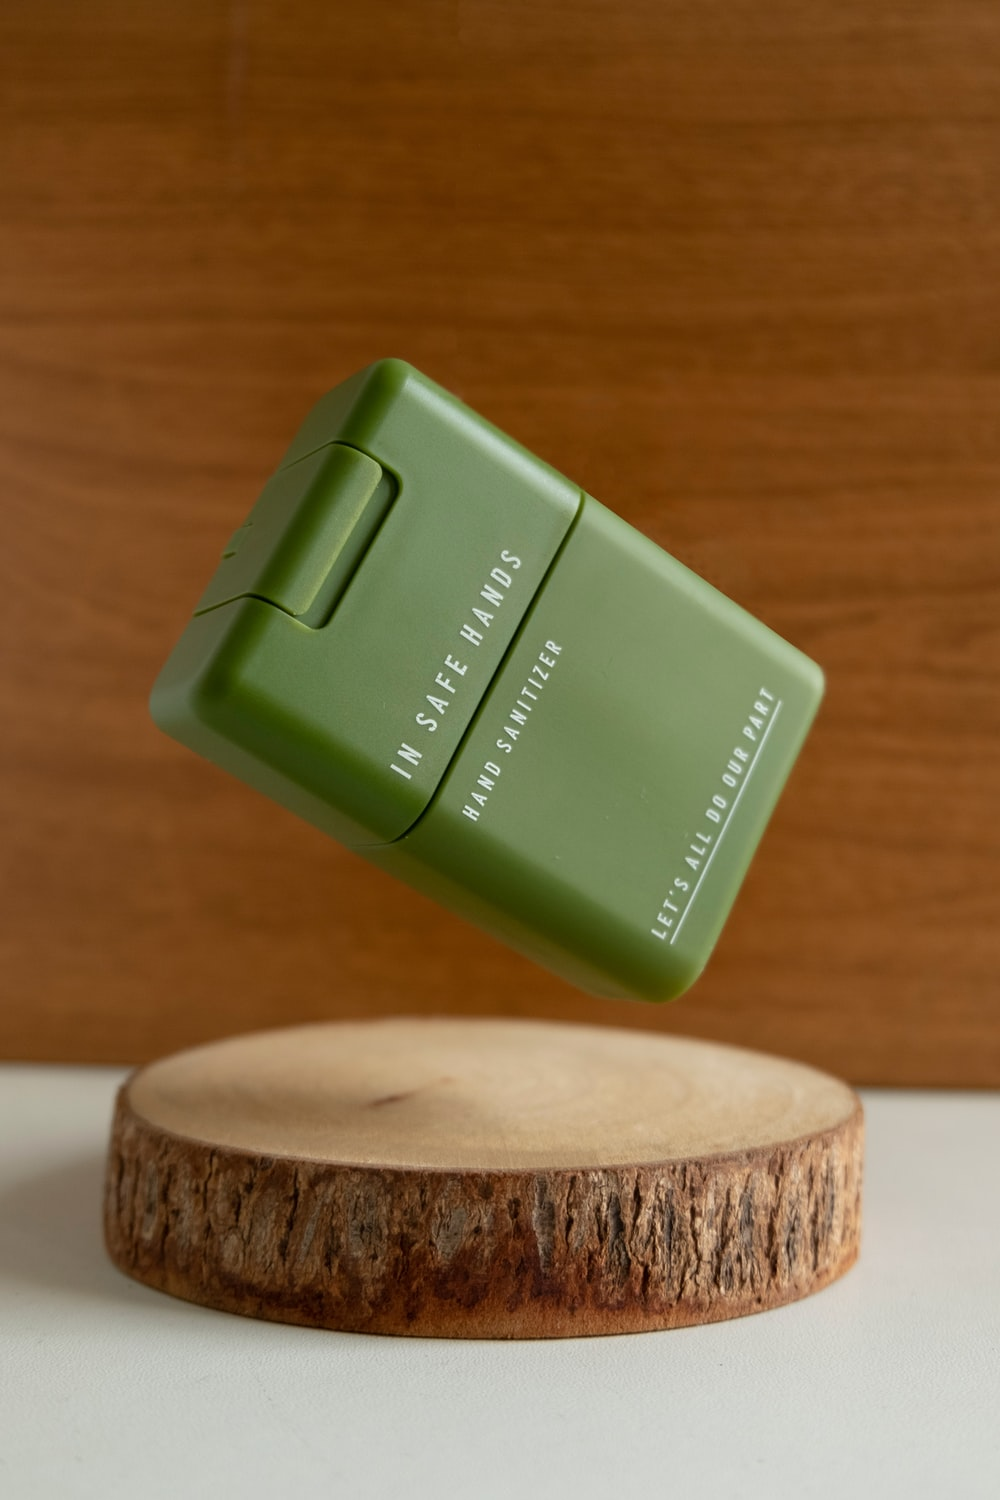 green plastic container on brown wooden round table